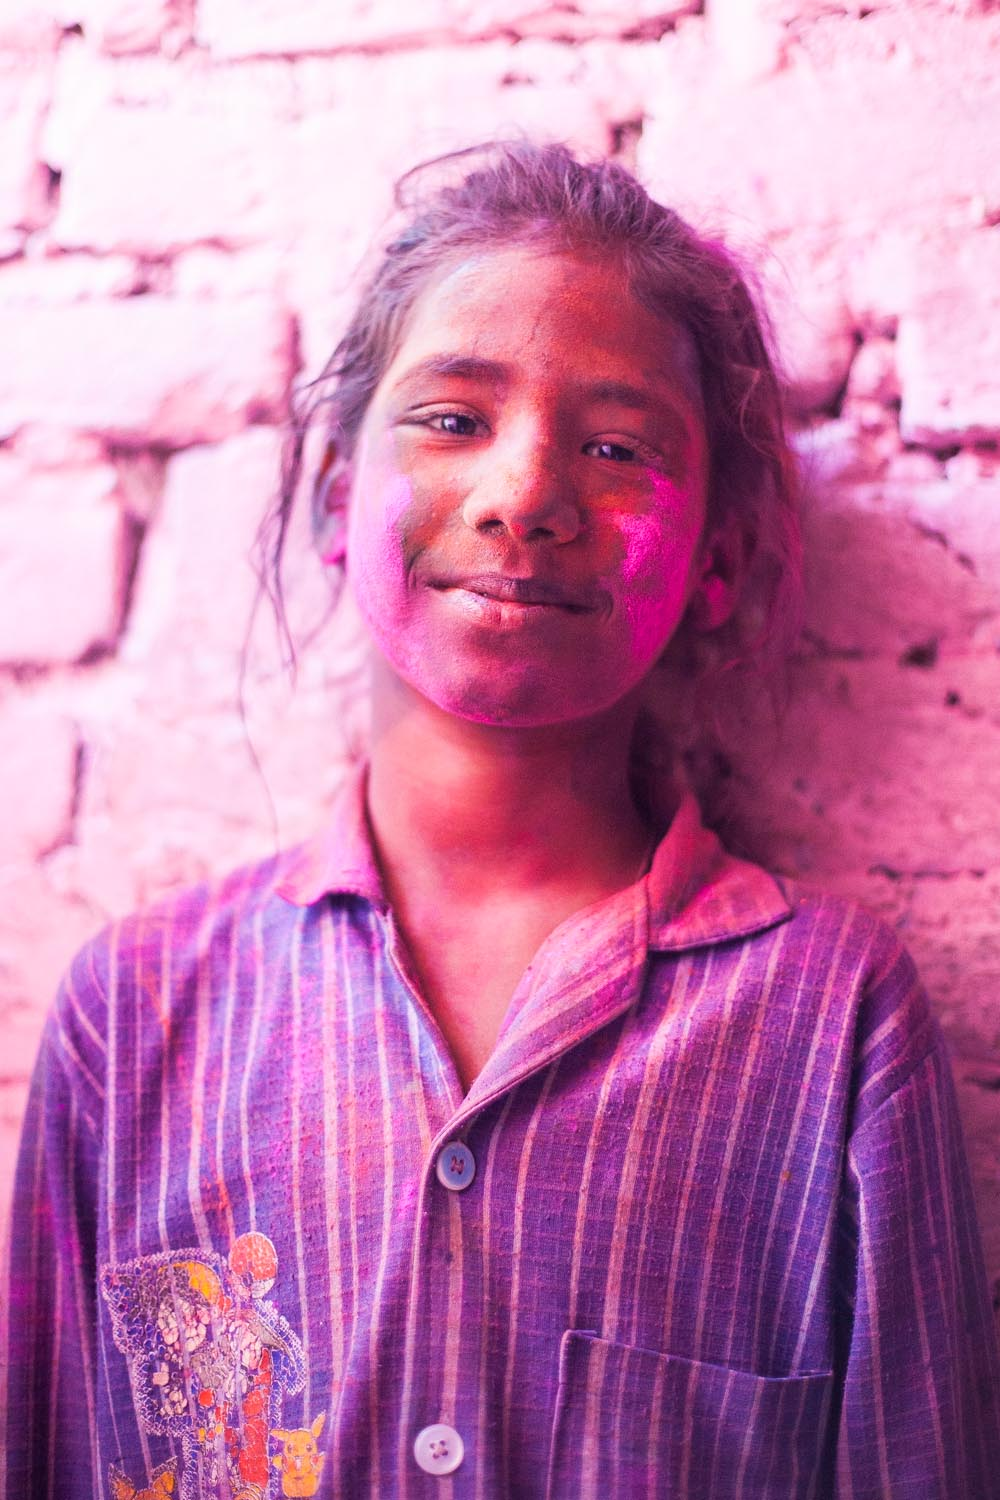 Holi has recently been appropriated in Canada, the US and parts of Europe in manyevents such as the color run, and run or dye.